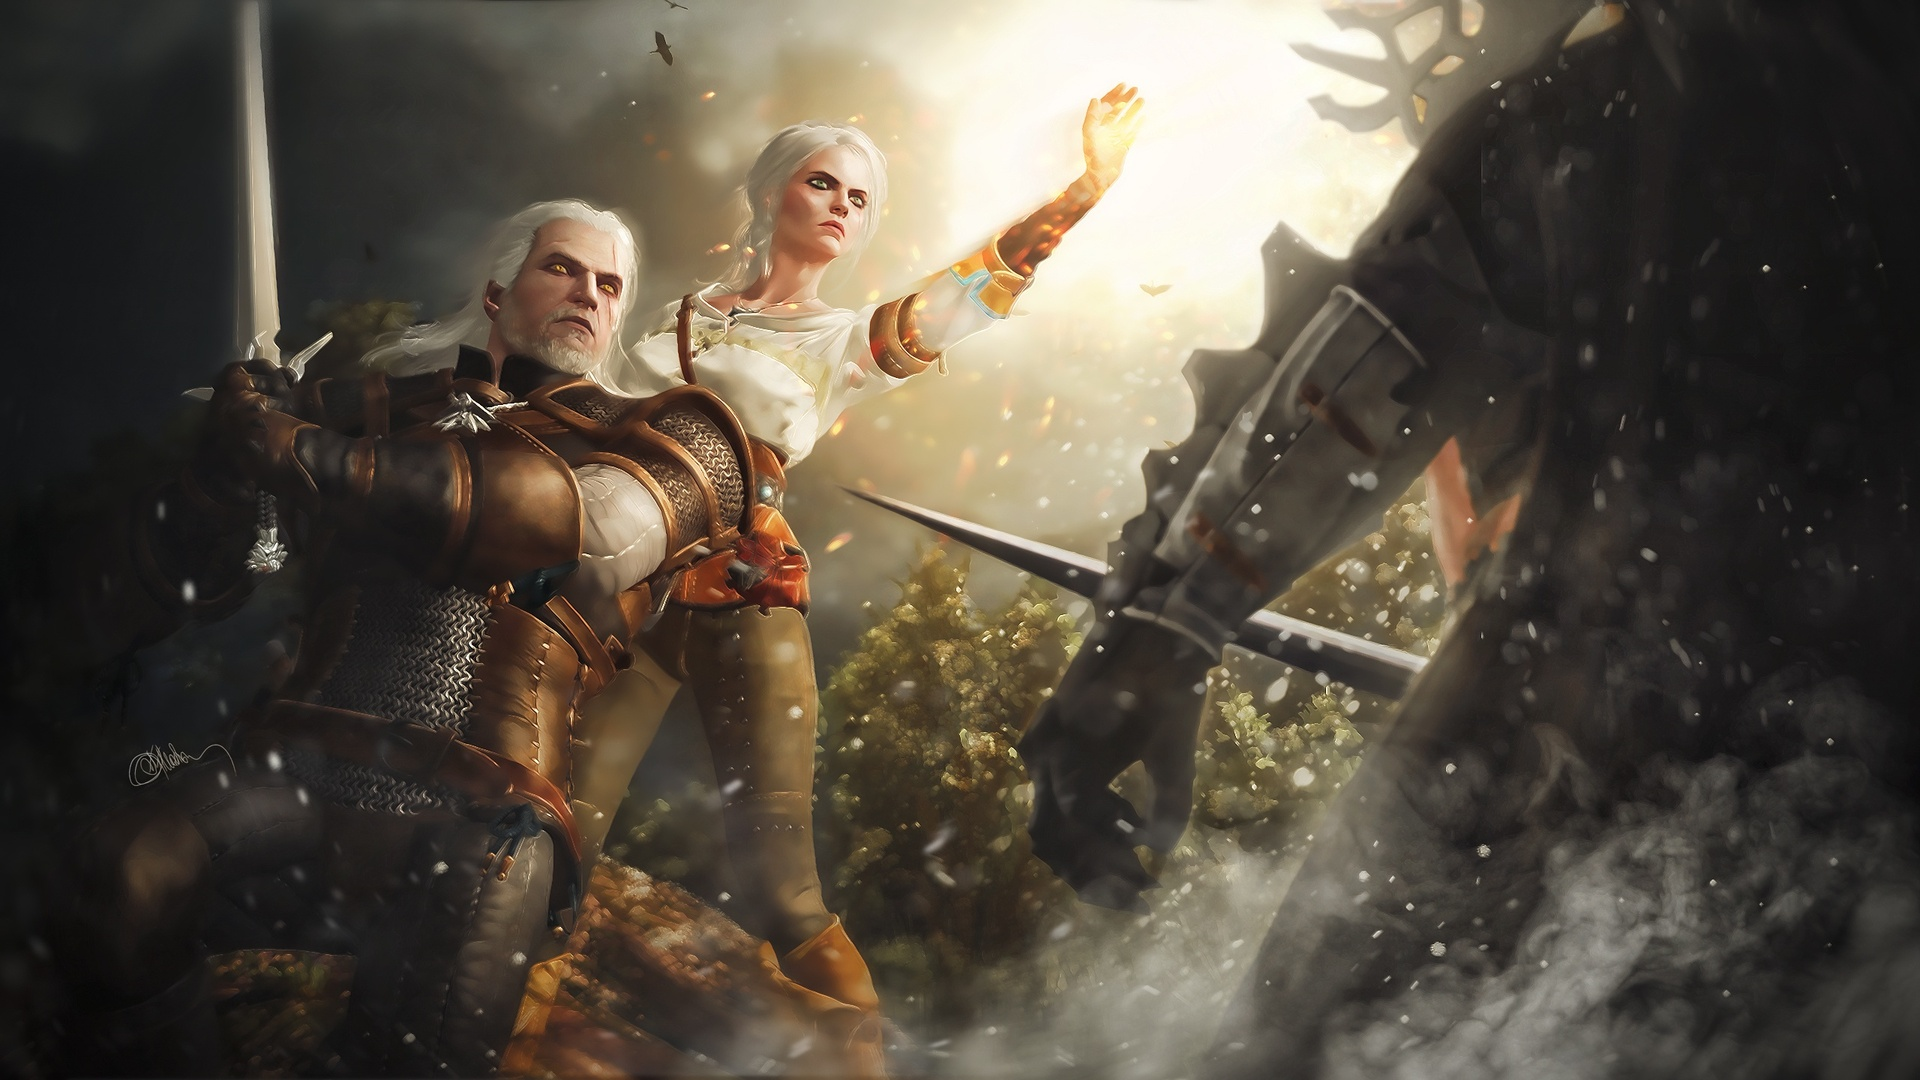 1920x1080 The Witcher 3 Wild Hunt Game Art Laptop Full Hd 1080p Hd